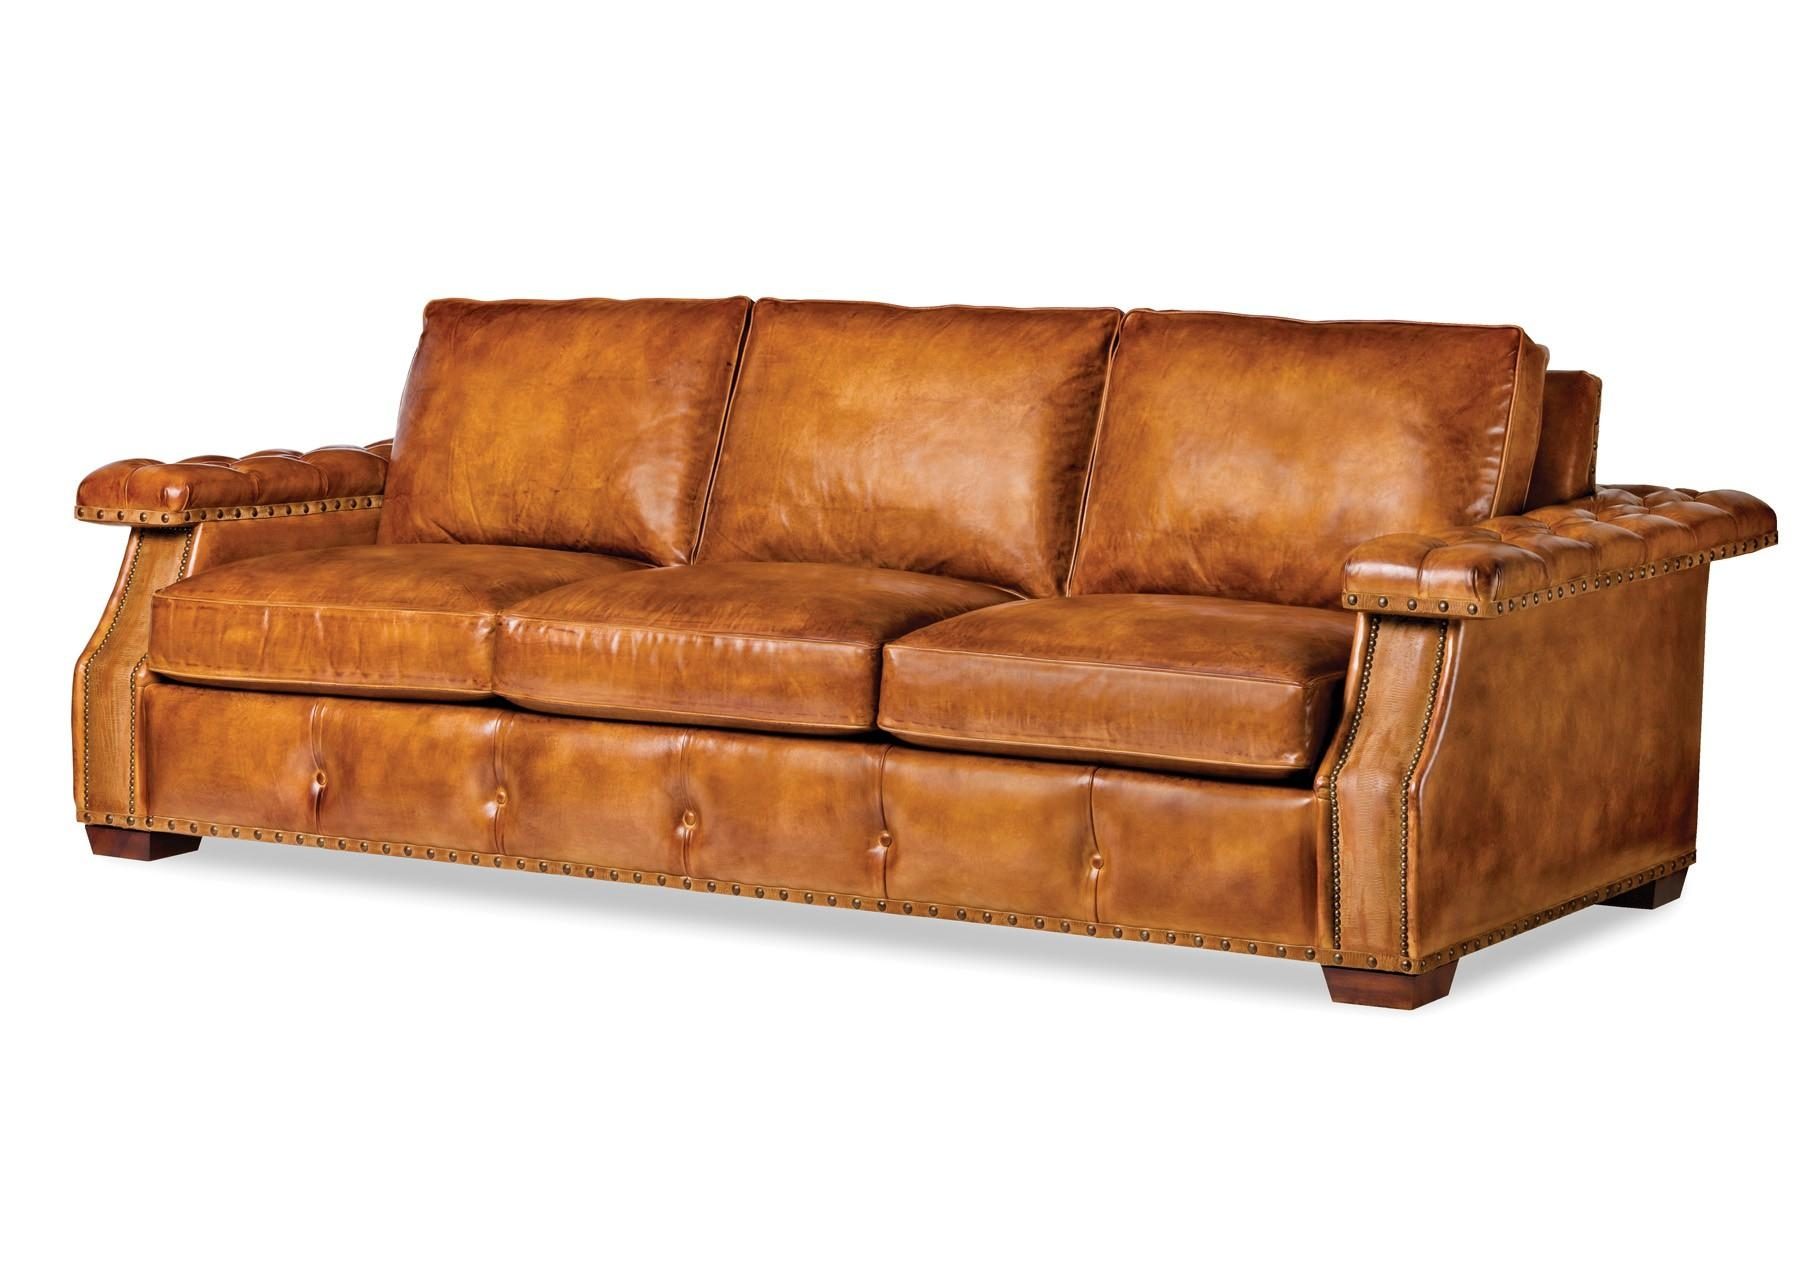 2019 Latest Camel Colored Leather Sofas | Sofa Ideas